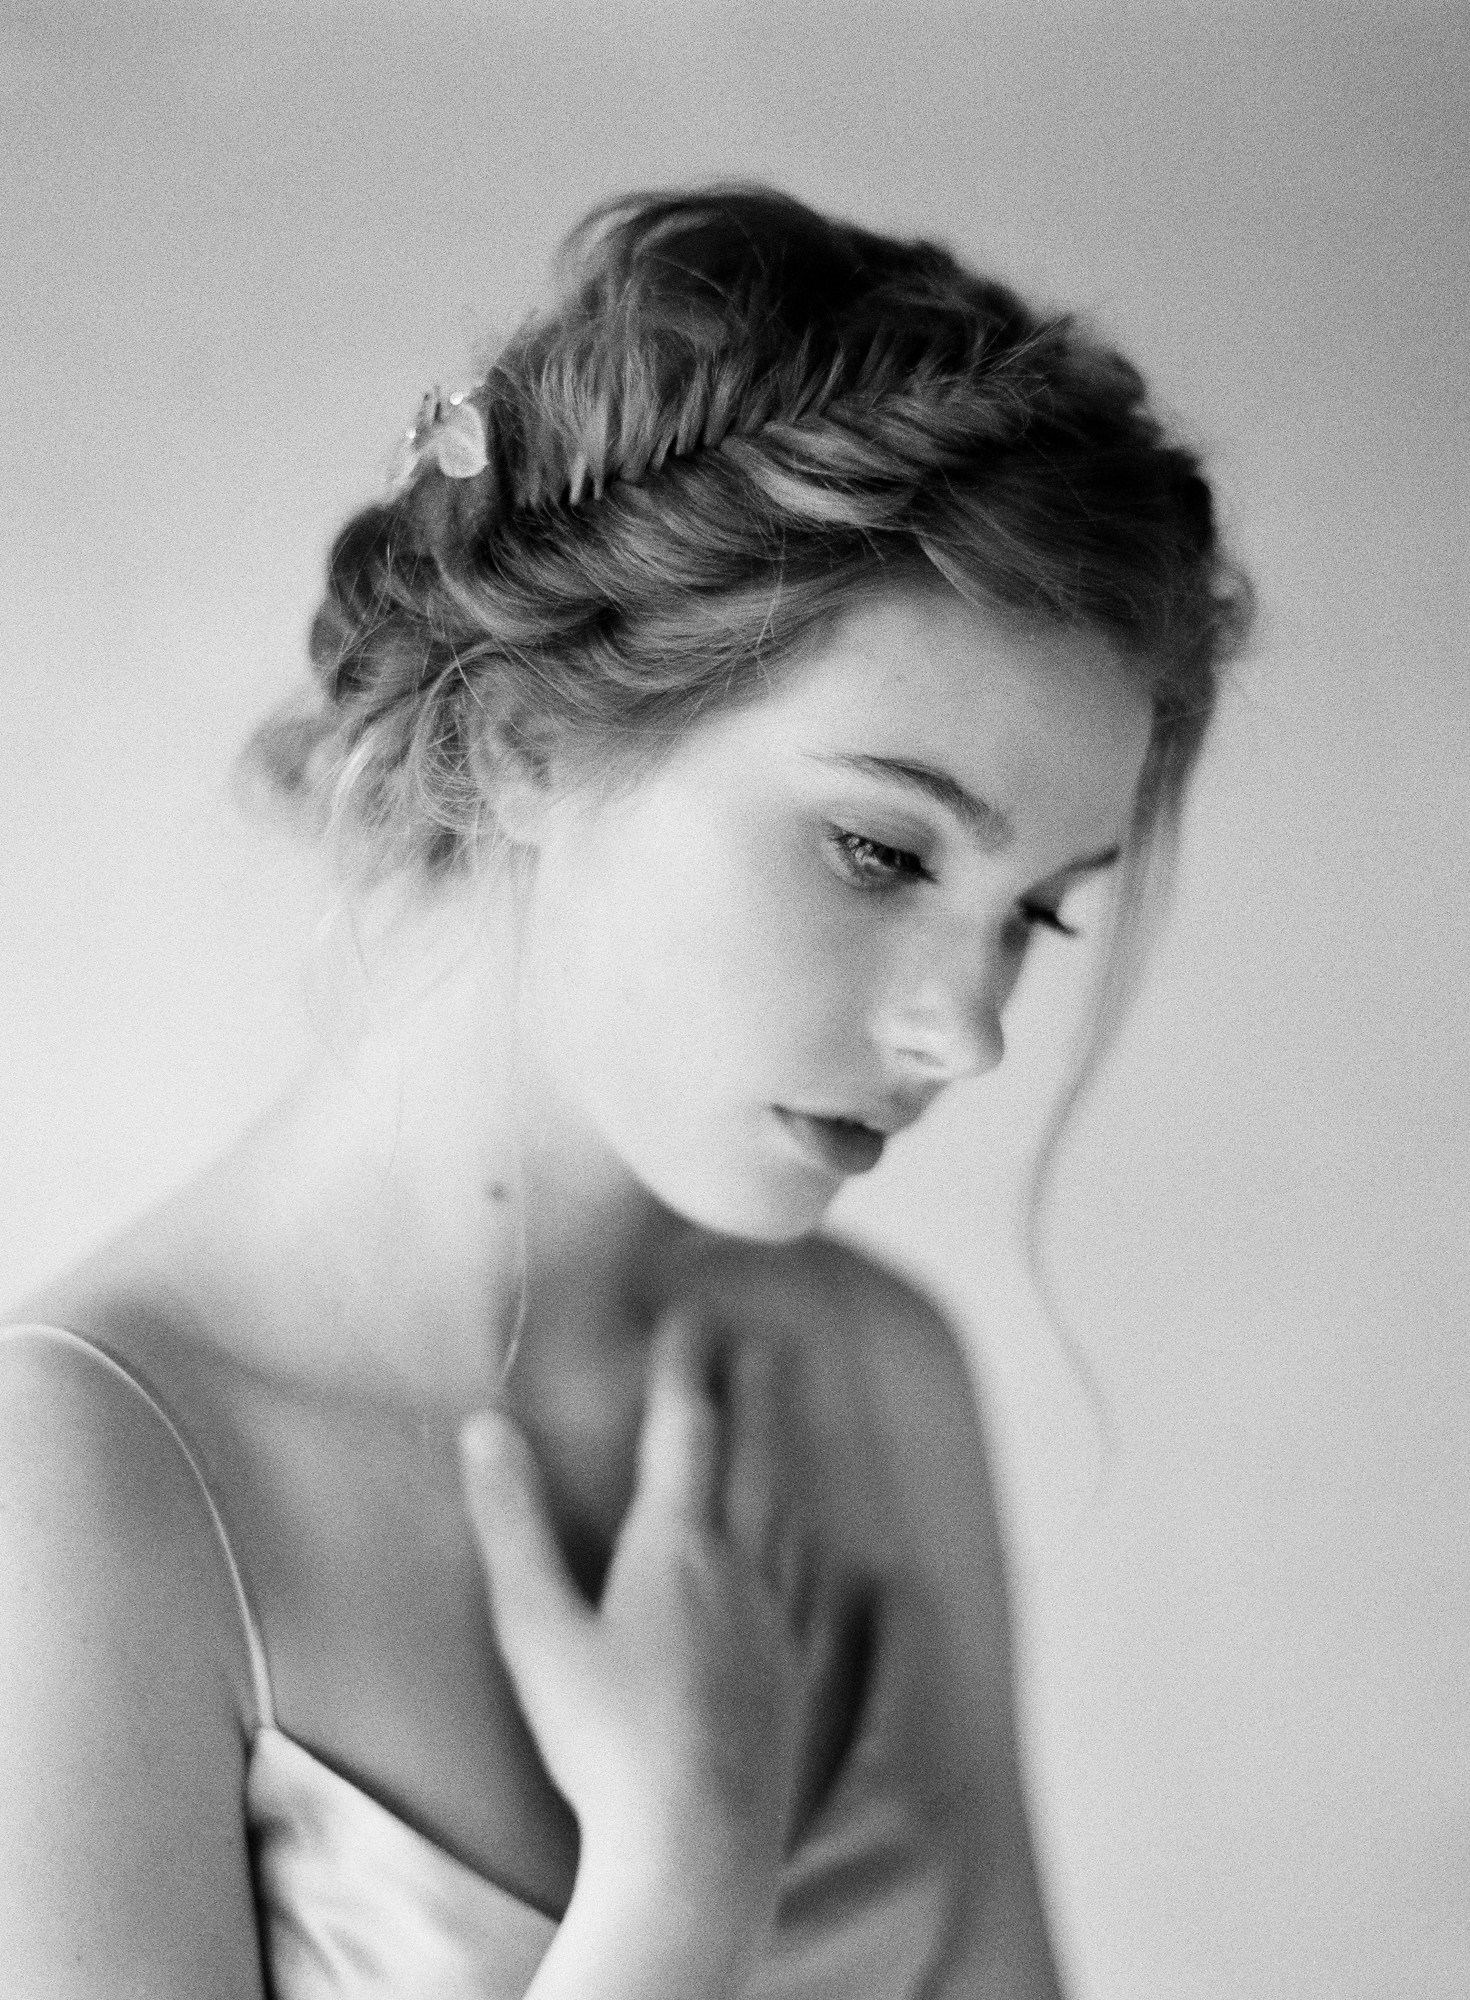 Twisted braid hairstyle film portrait Jen Huang Los Angeles wedding photographer